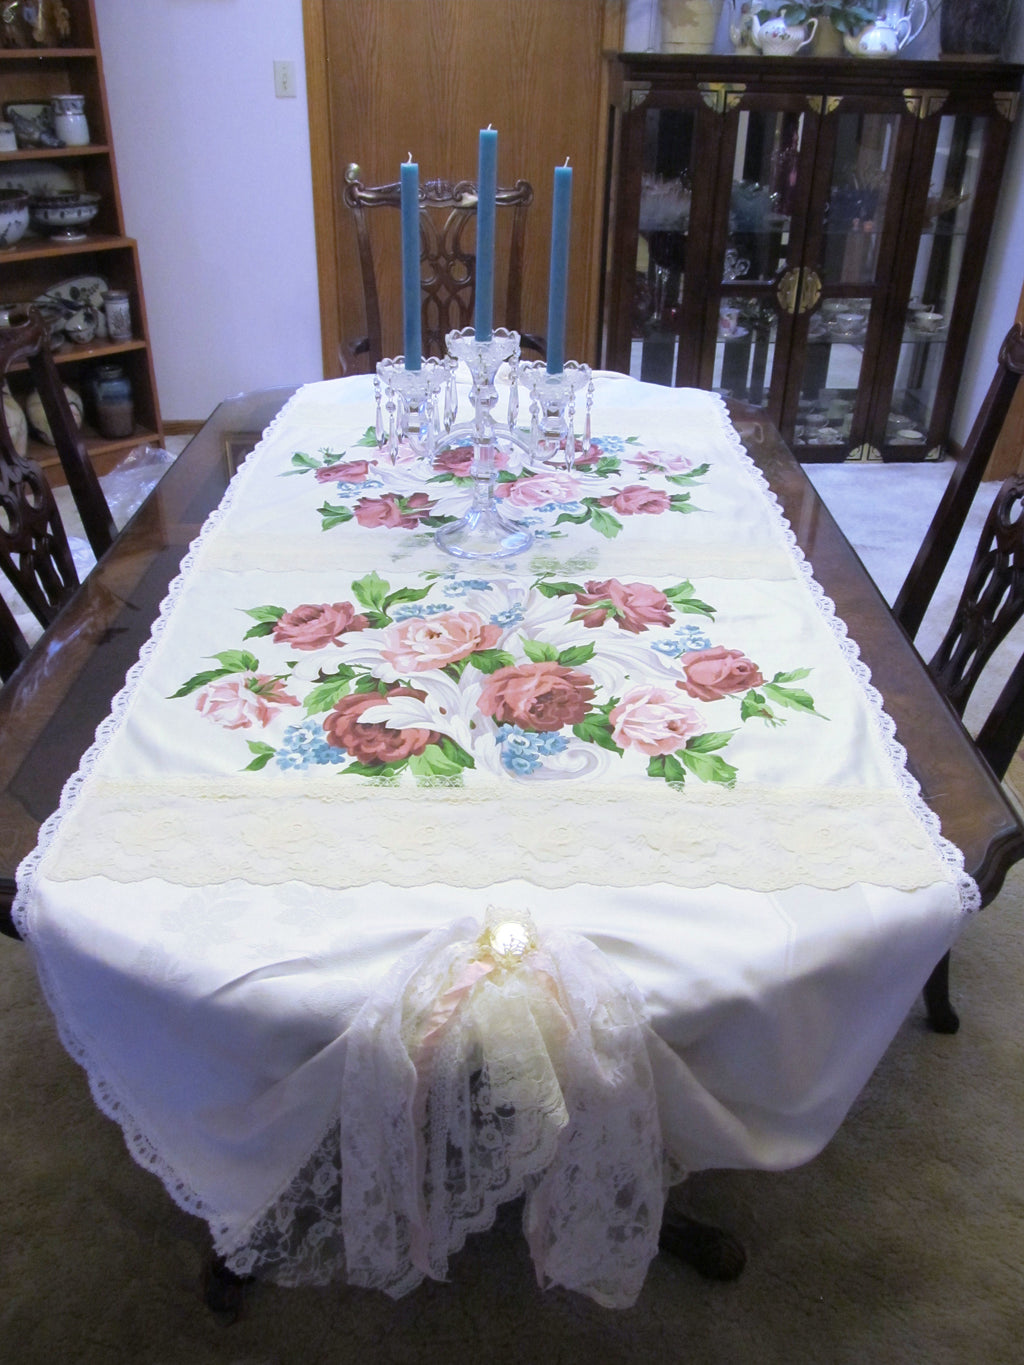 "Vintage Waverly Roses Lace Table Runner - White Off White - Special Occasion  OOAK - Vintage Style Rustic 33"" x 86"""